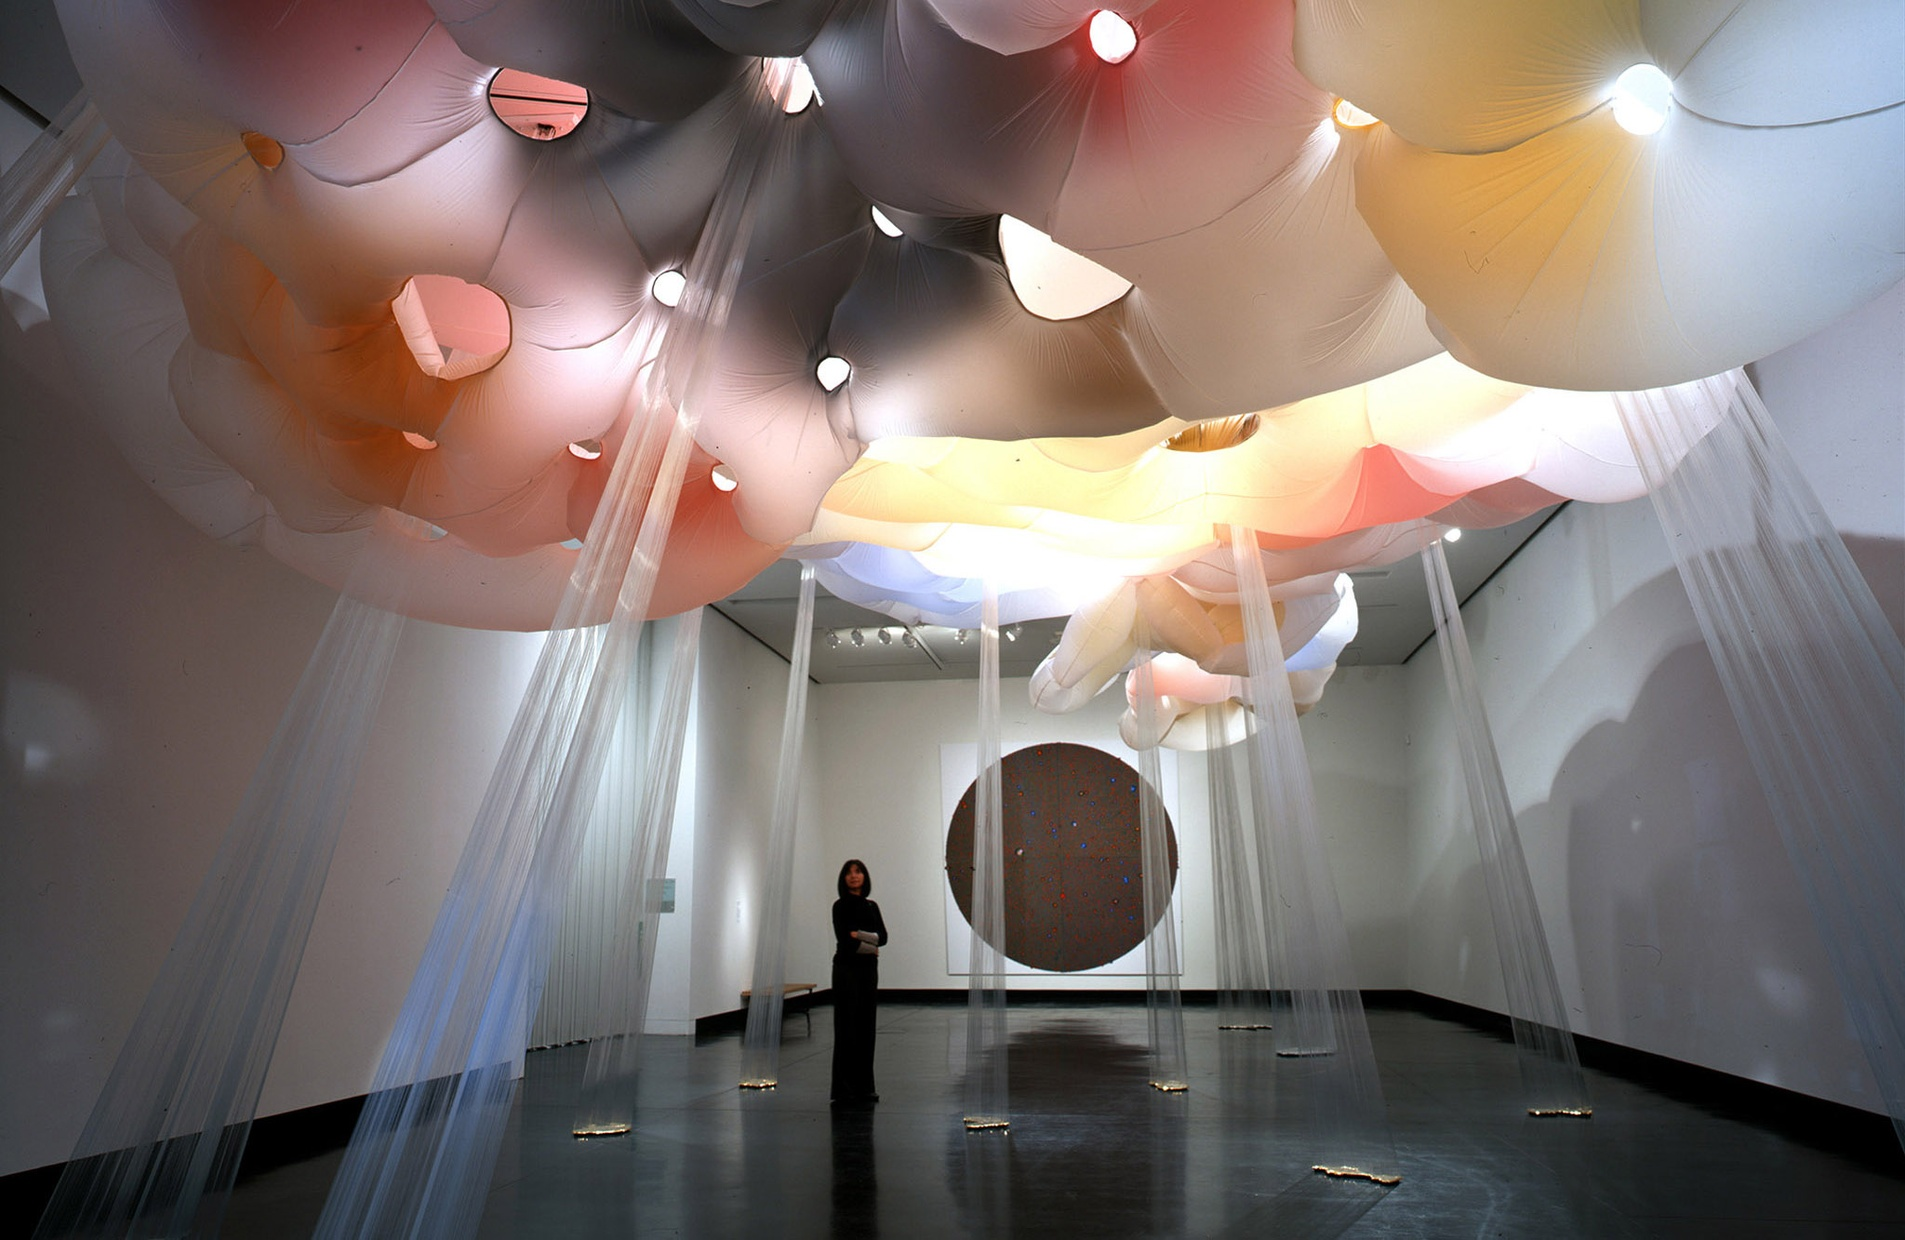 A woman stands in a gallery looking up at a red, yellow, black, and white cloud-like sculpture on the ceiling with rays extending to the floor.